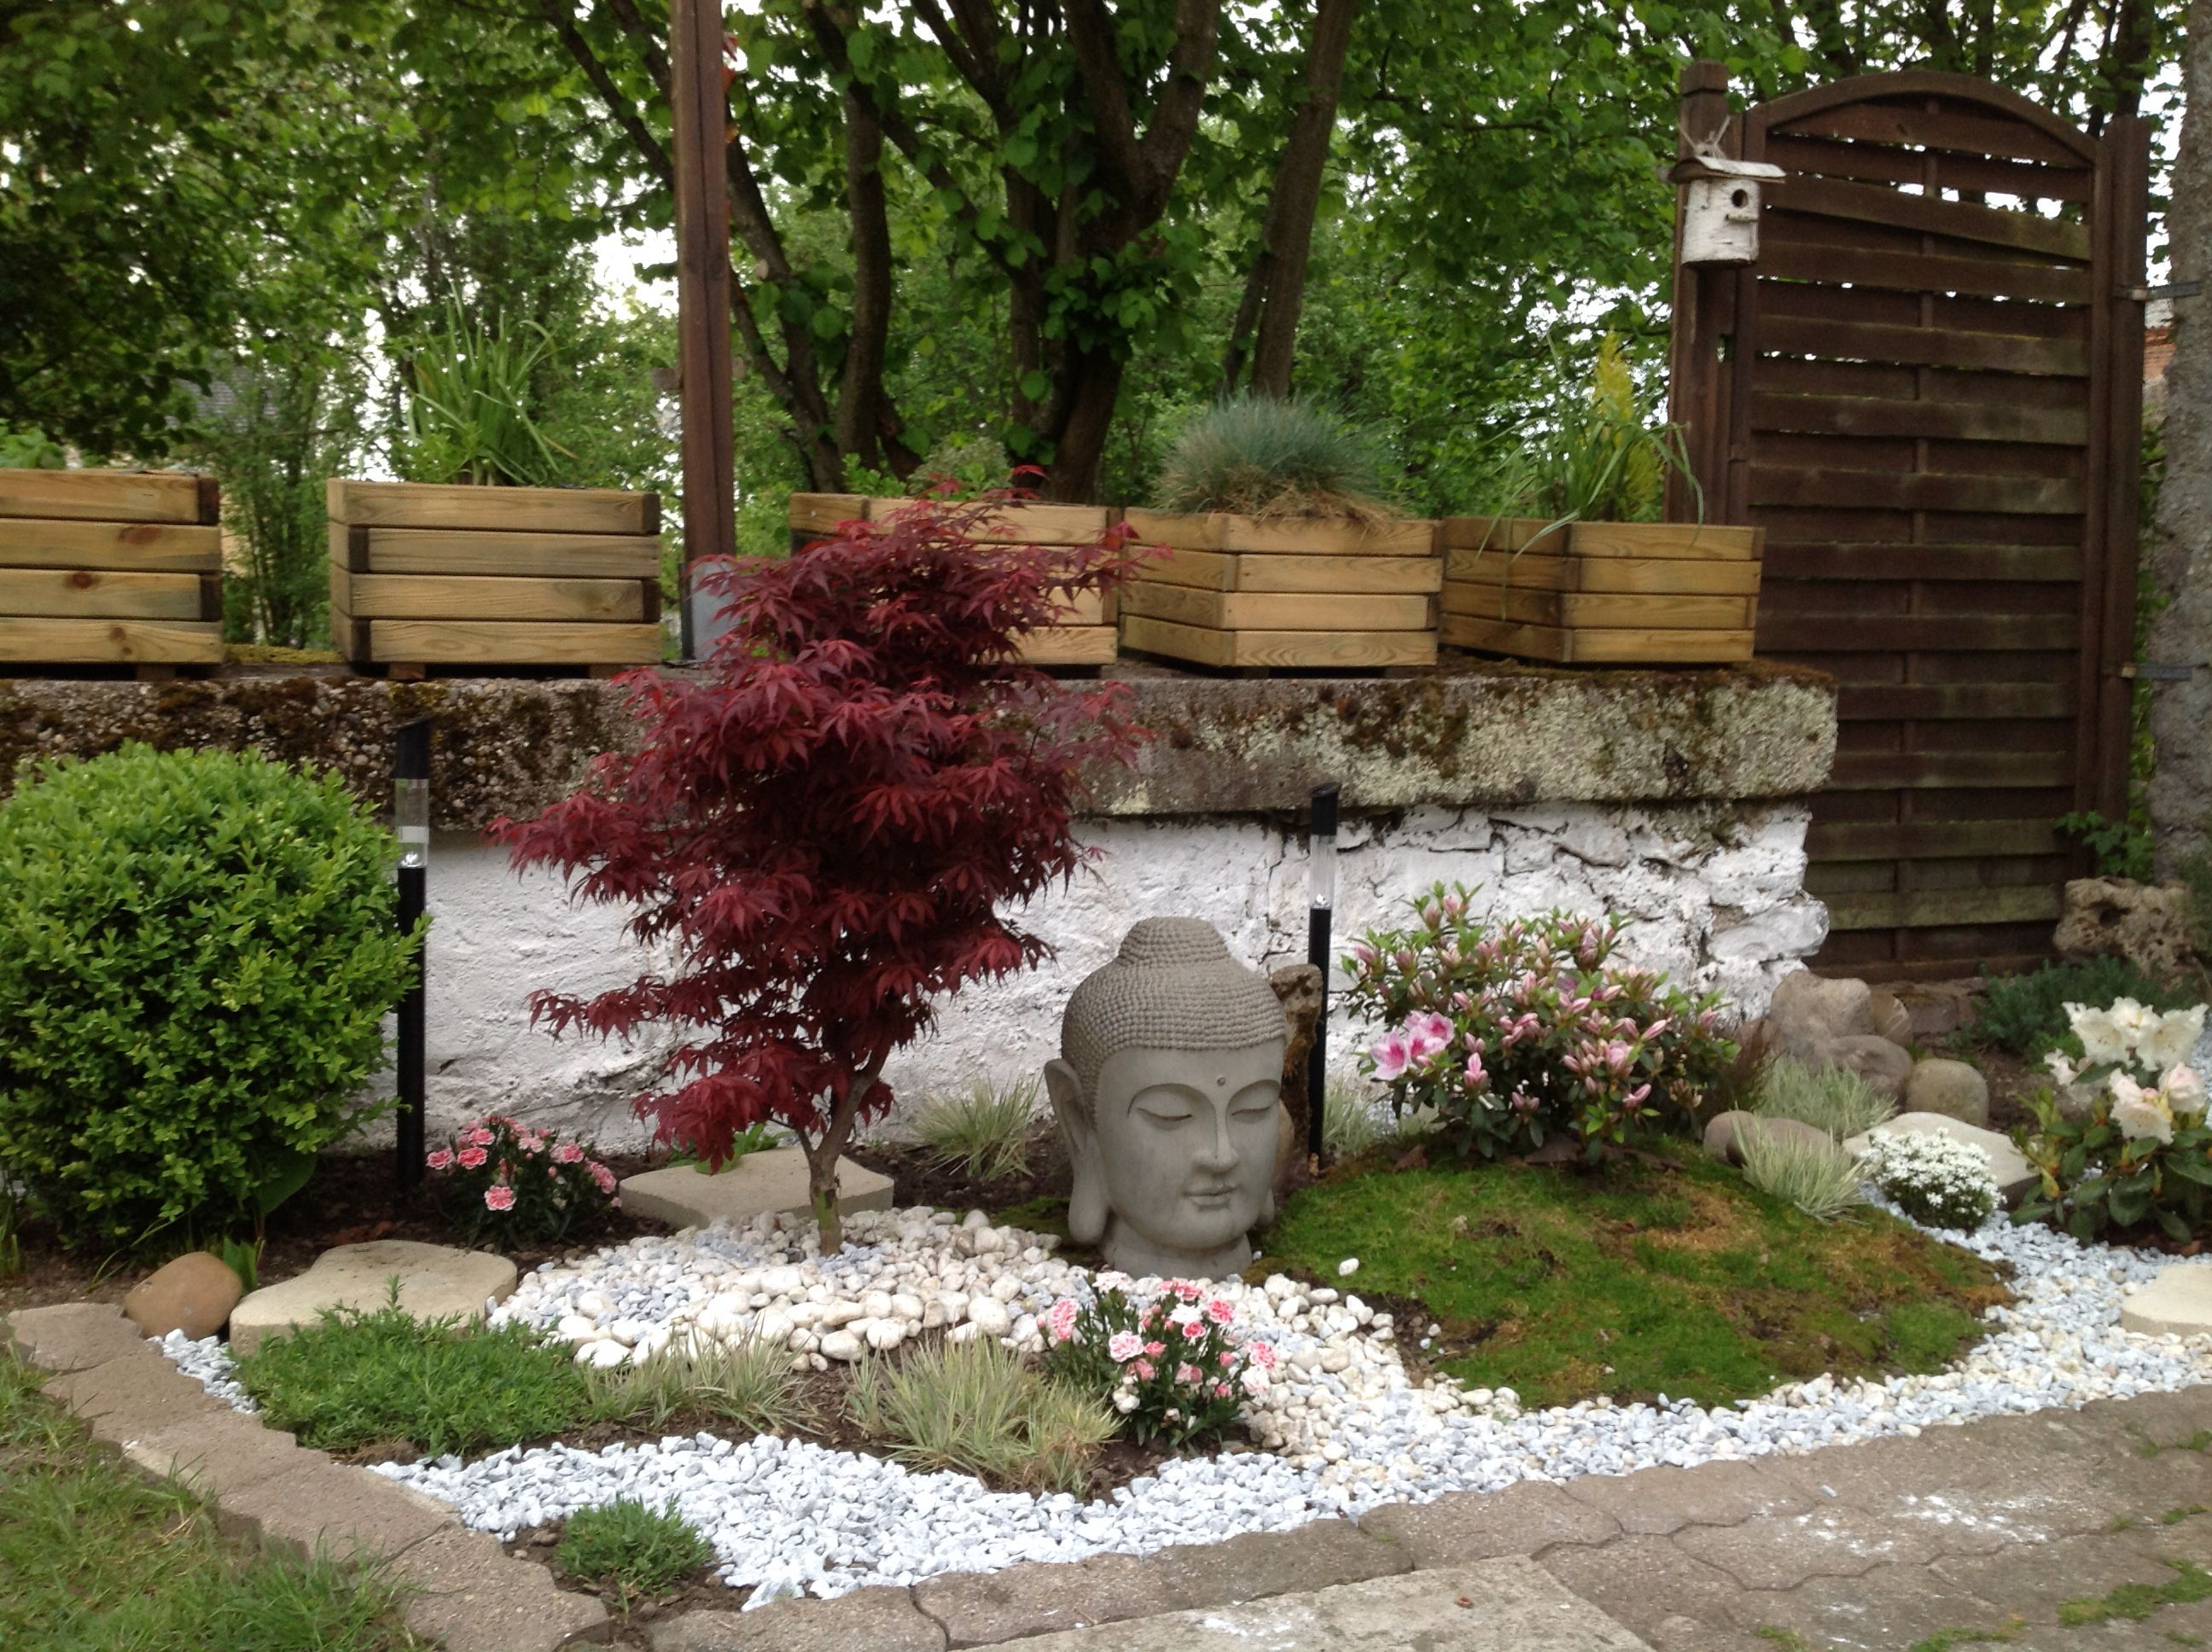 mini buddha garden in my home proyectos que debo intentar in 2018 pinterest. Black Bedroom Furniture Sets. Home Design Ideas